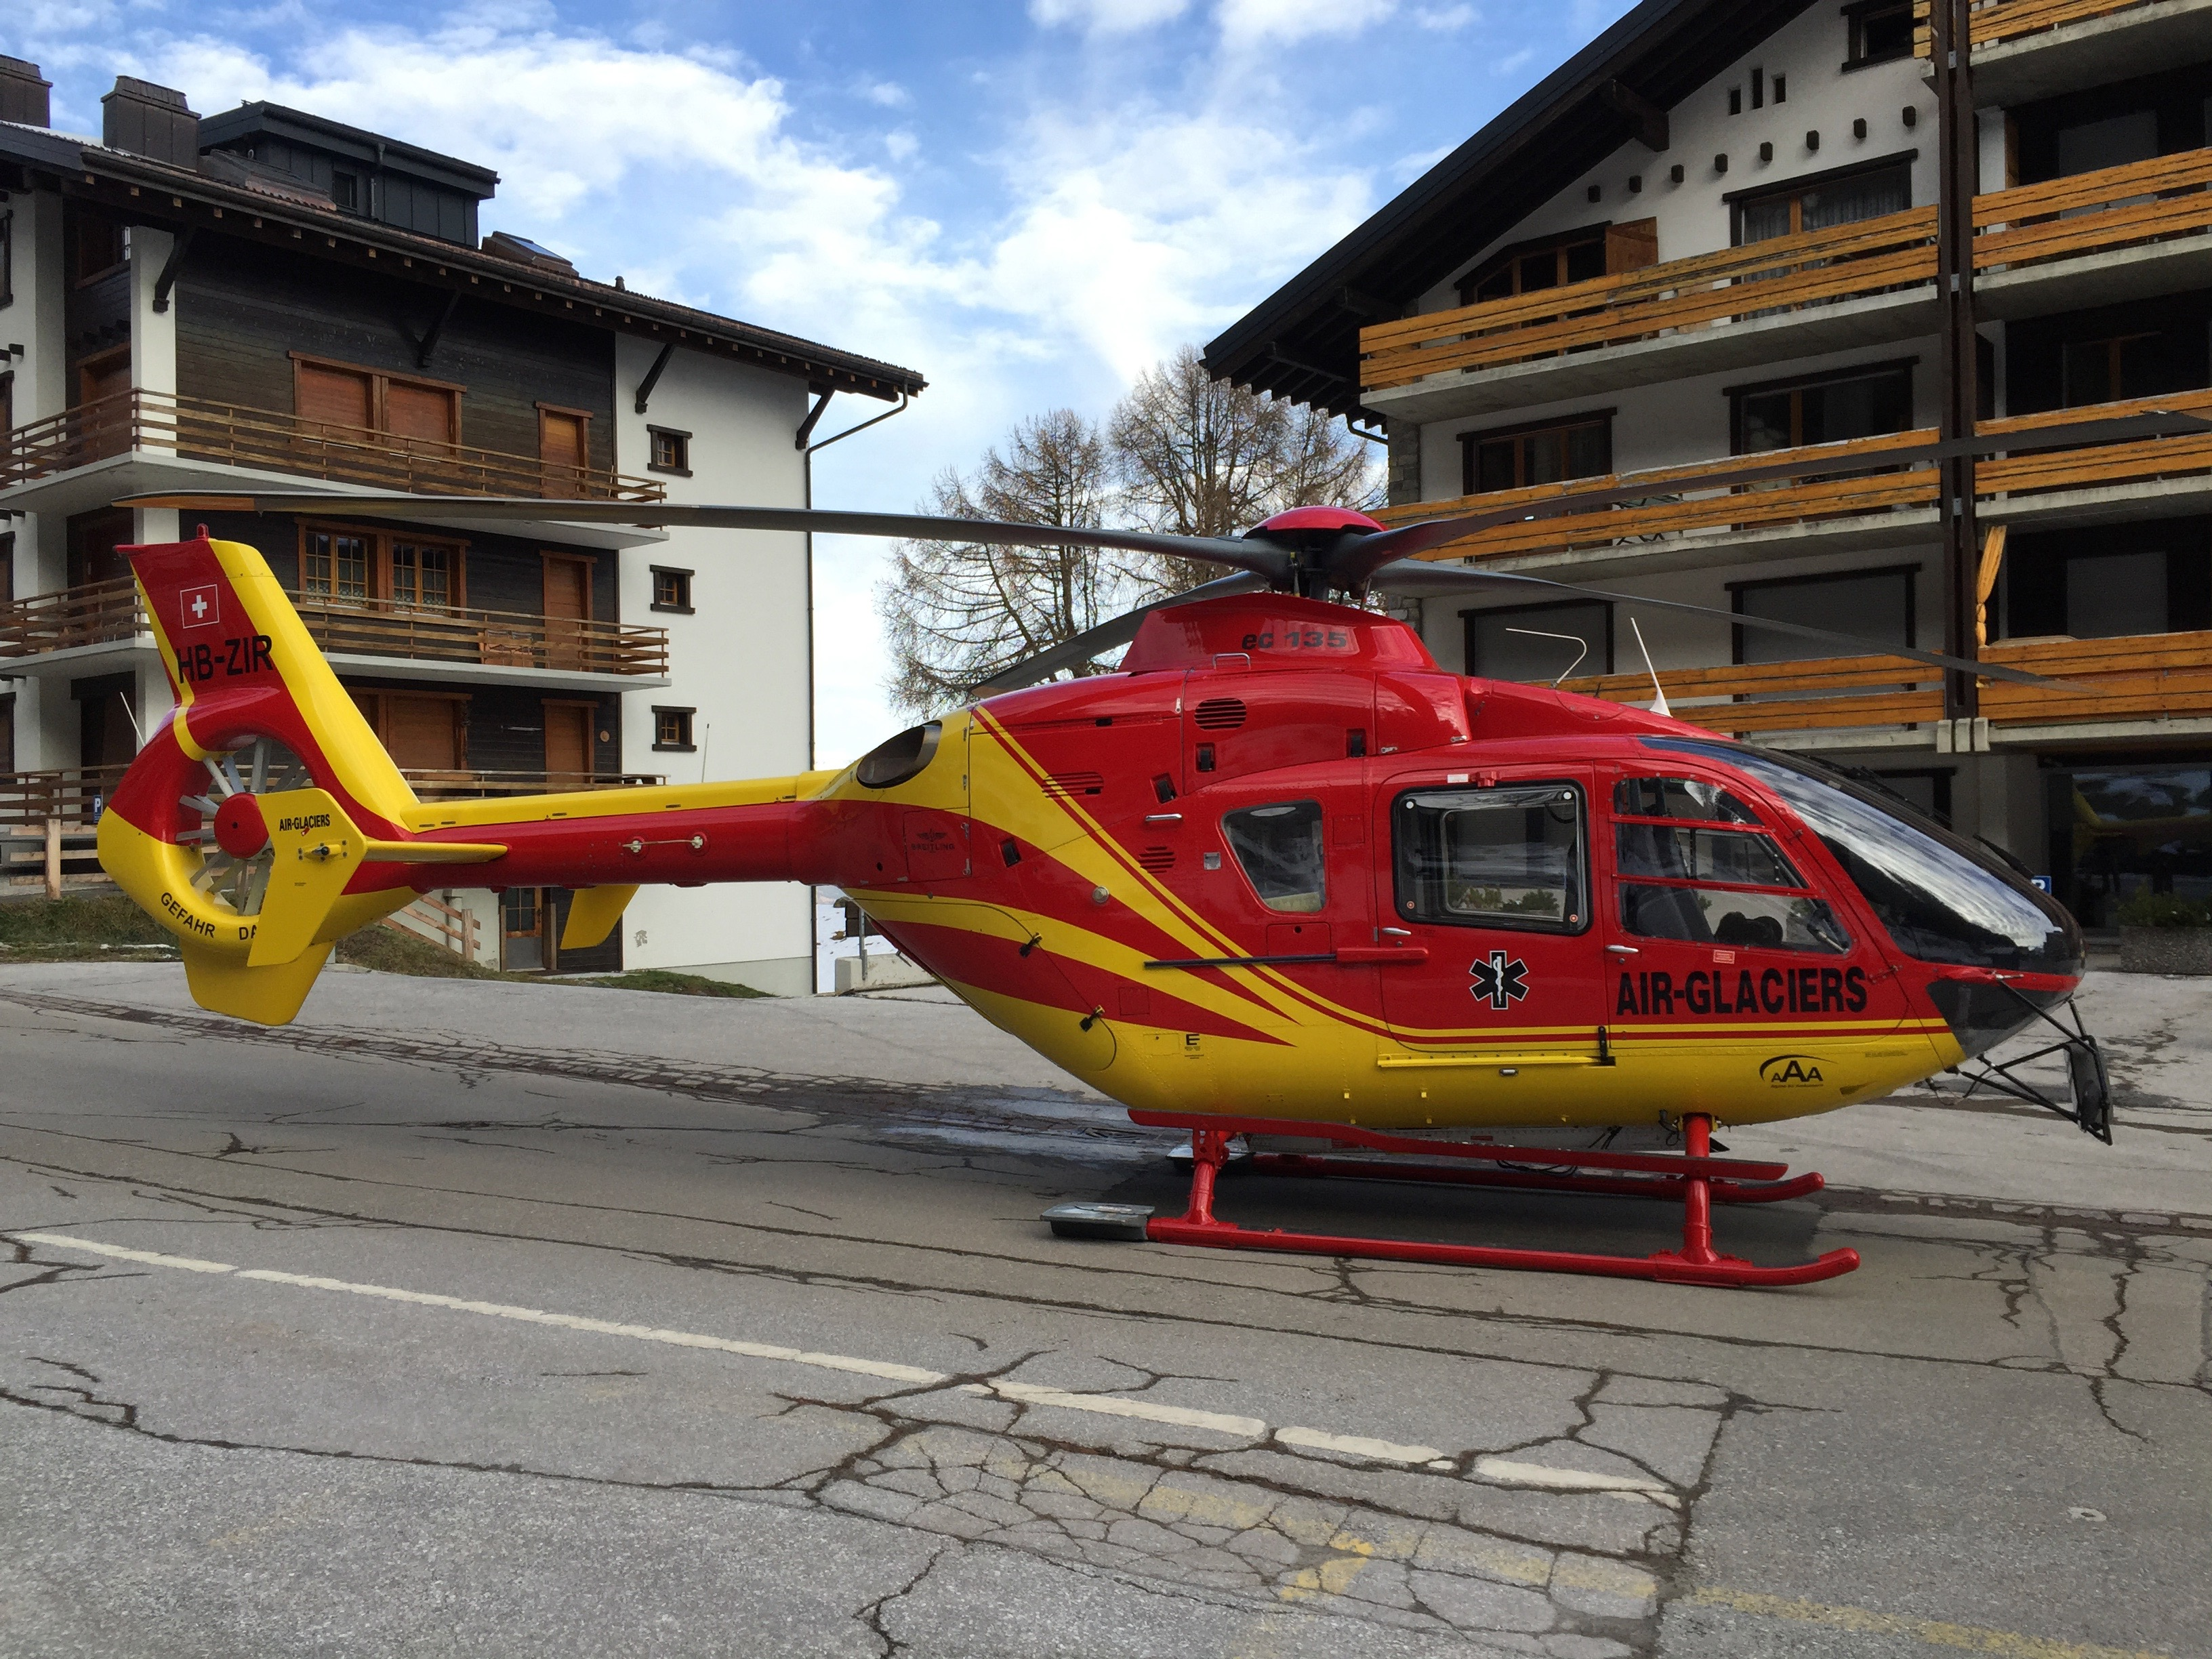 photo of helicopter in Les Collons main street